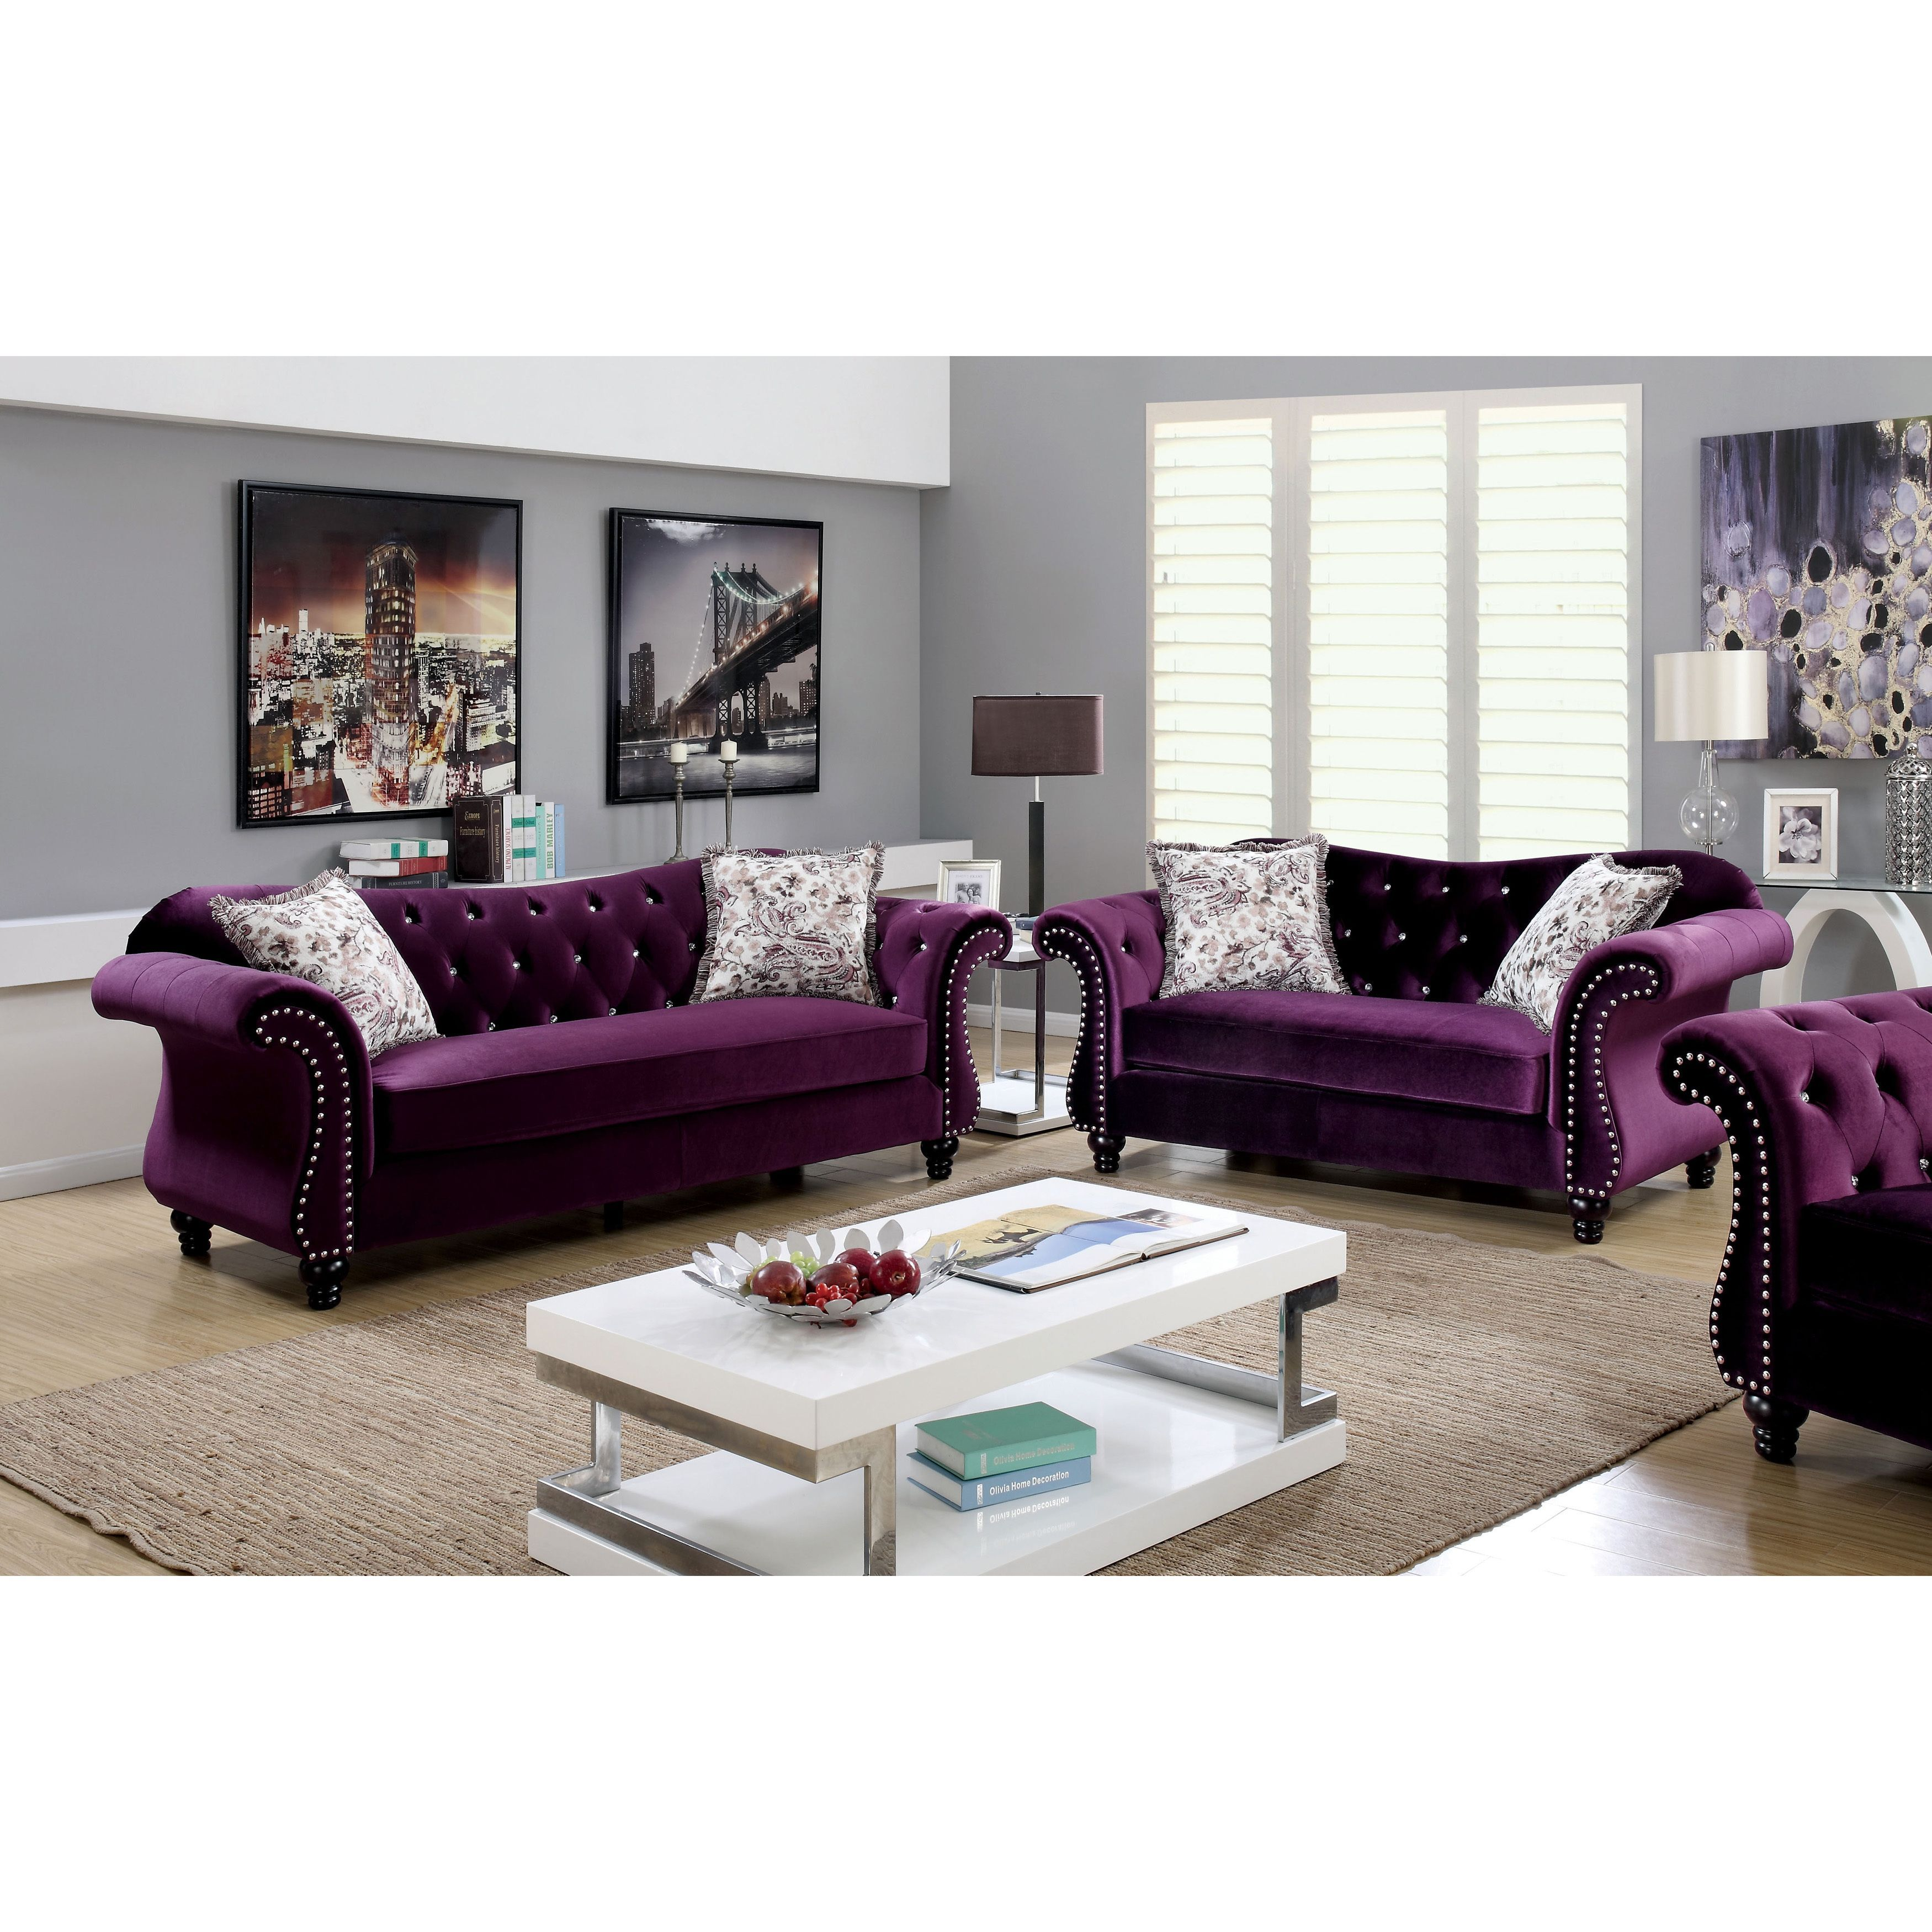 Perfect Furniture Of America Dessie Traditional 3 Piece Tufted Sofa Set (Plum),  Purple